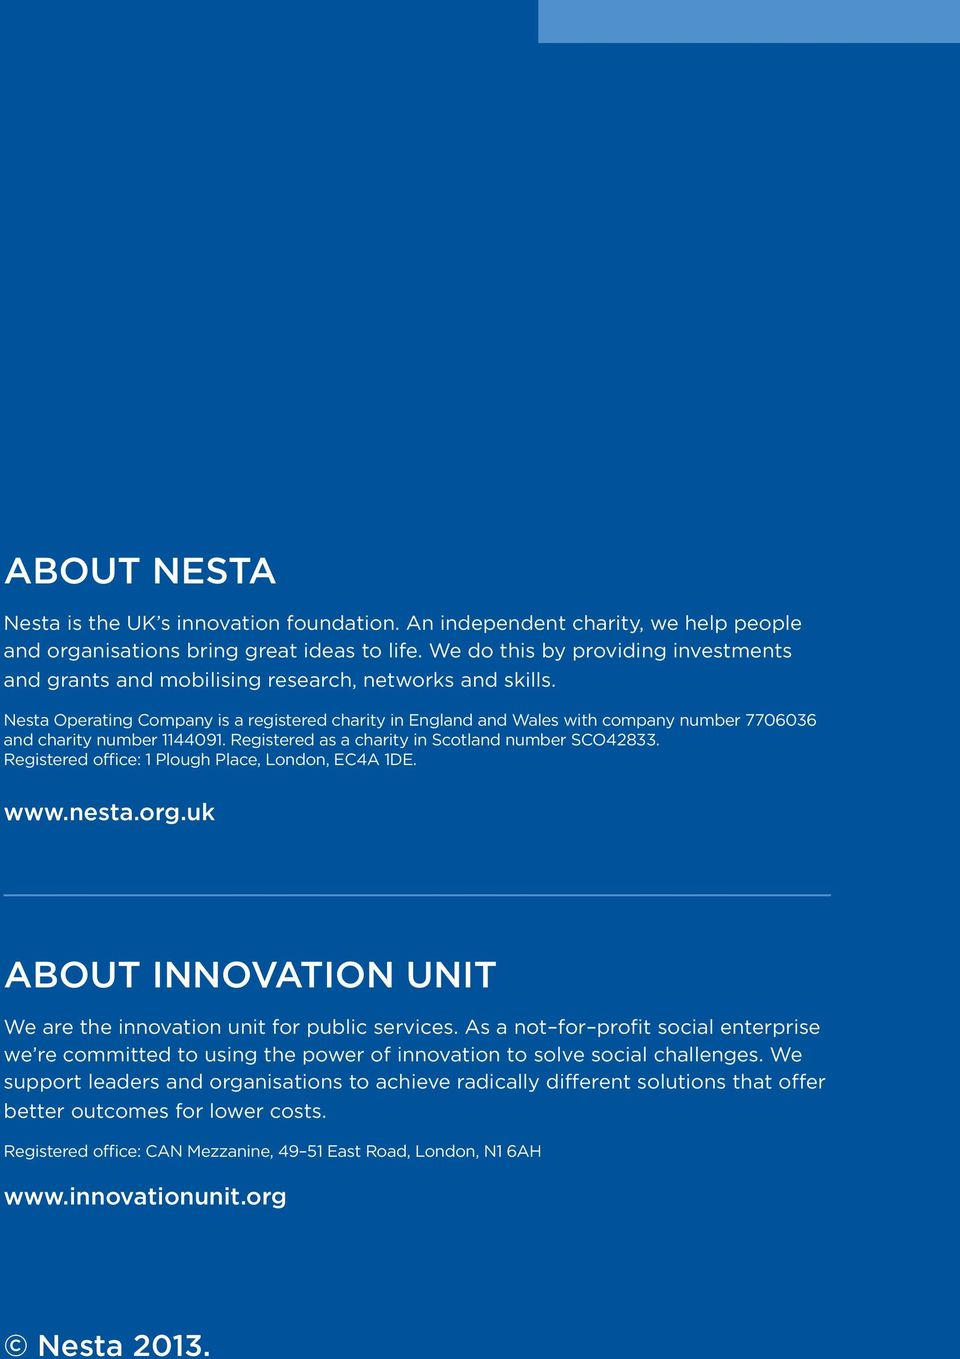 Nesta Operating Company is a registered charity in England and Wales with company number 7706036 and charity number 1144091. Registered as a charity in Scotland number SCO42833.